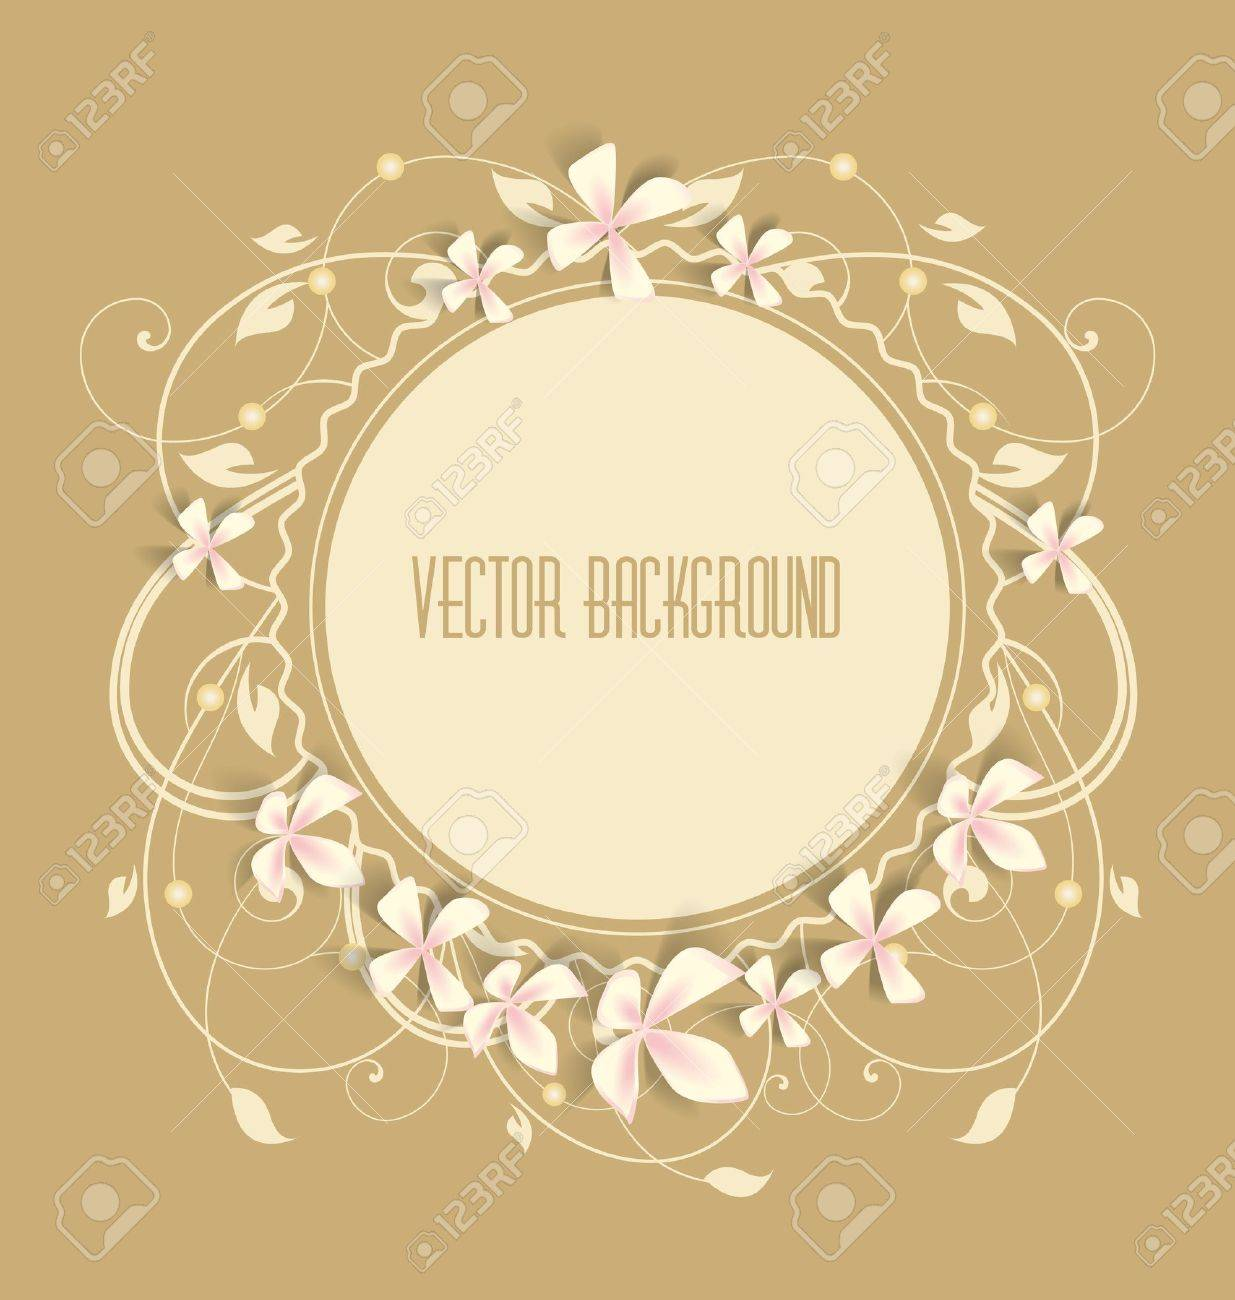 Vintage floral background  Beautiful frame with flowers Stock Vector - 14709947